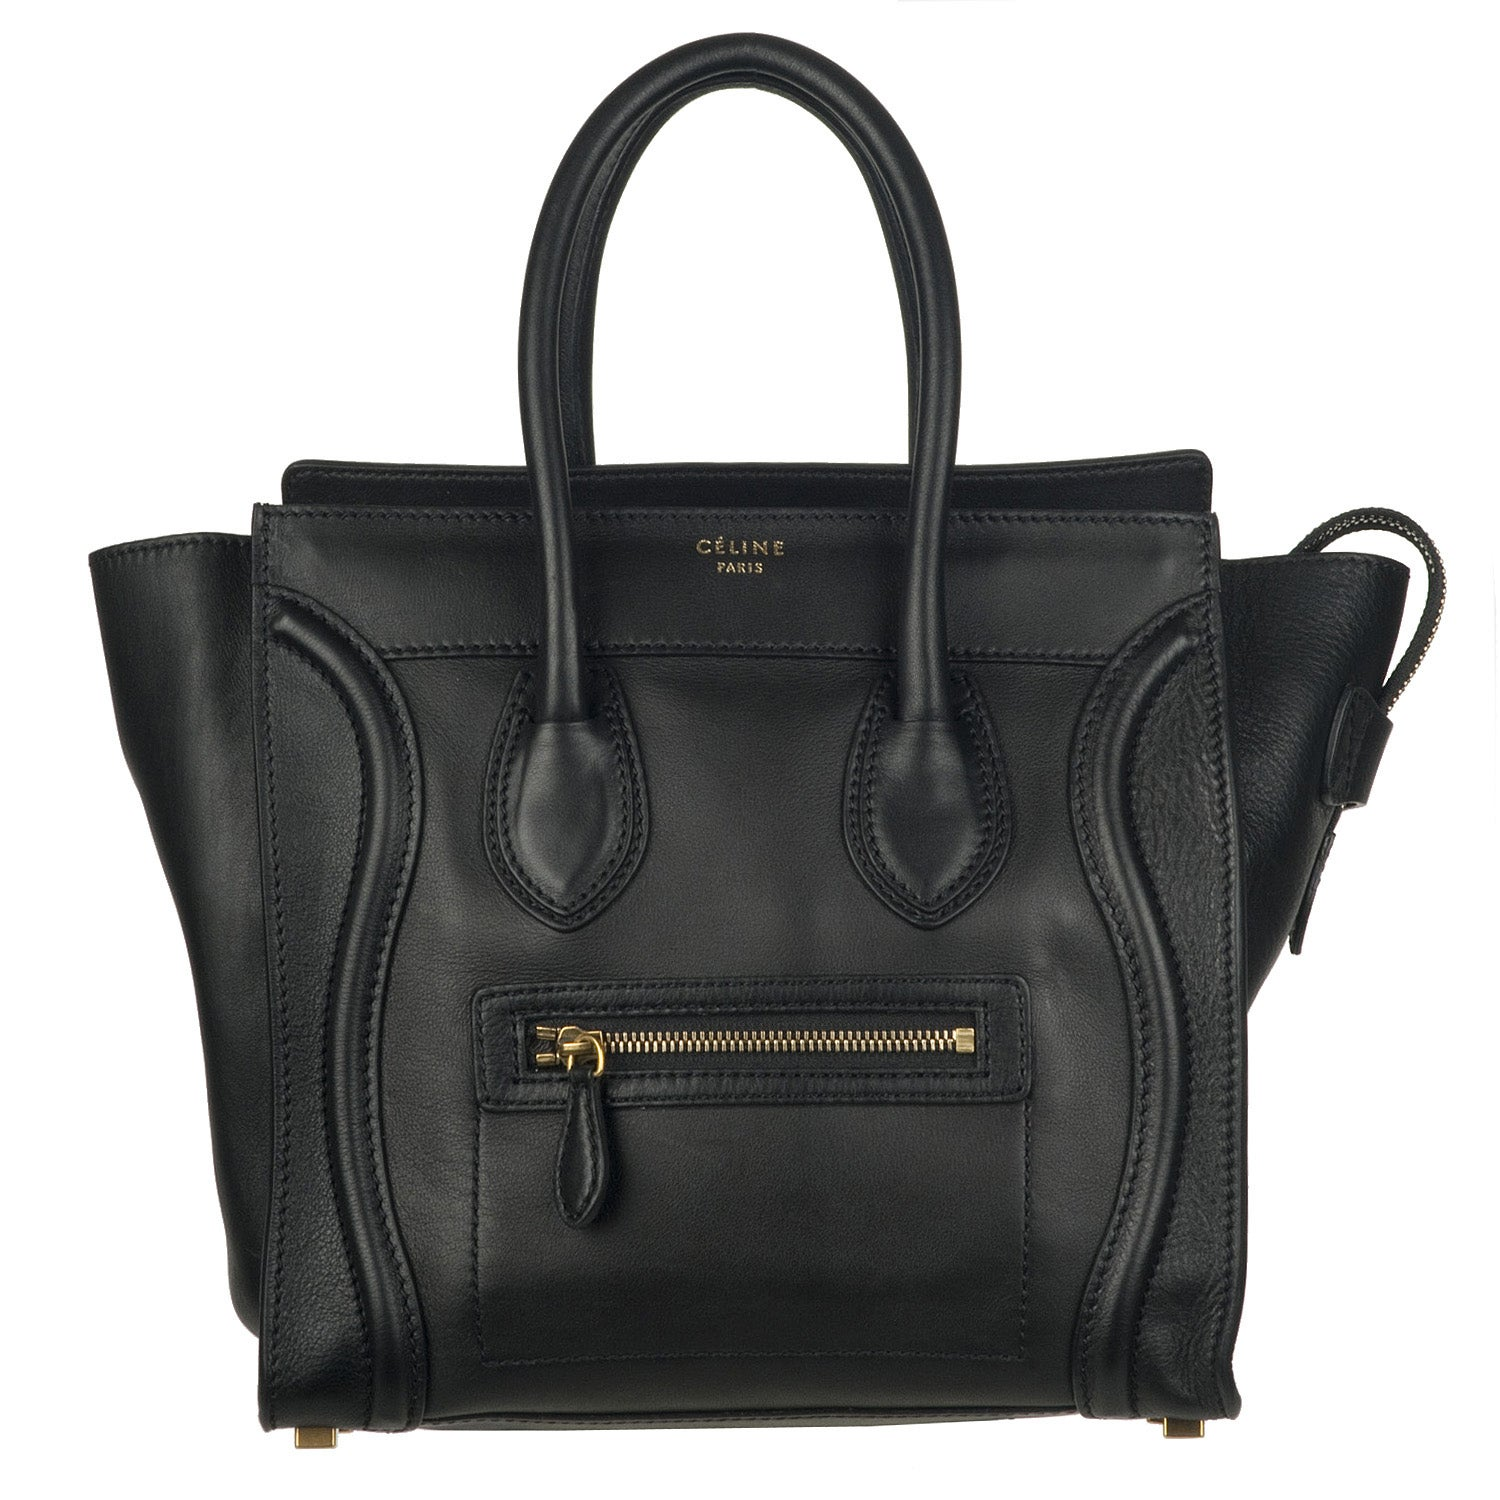 buy celine handbags - Celine Micro Black Leather Luggage Bag Tote - 13812228 - Overstock ...